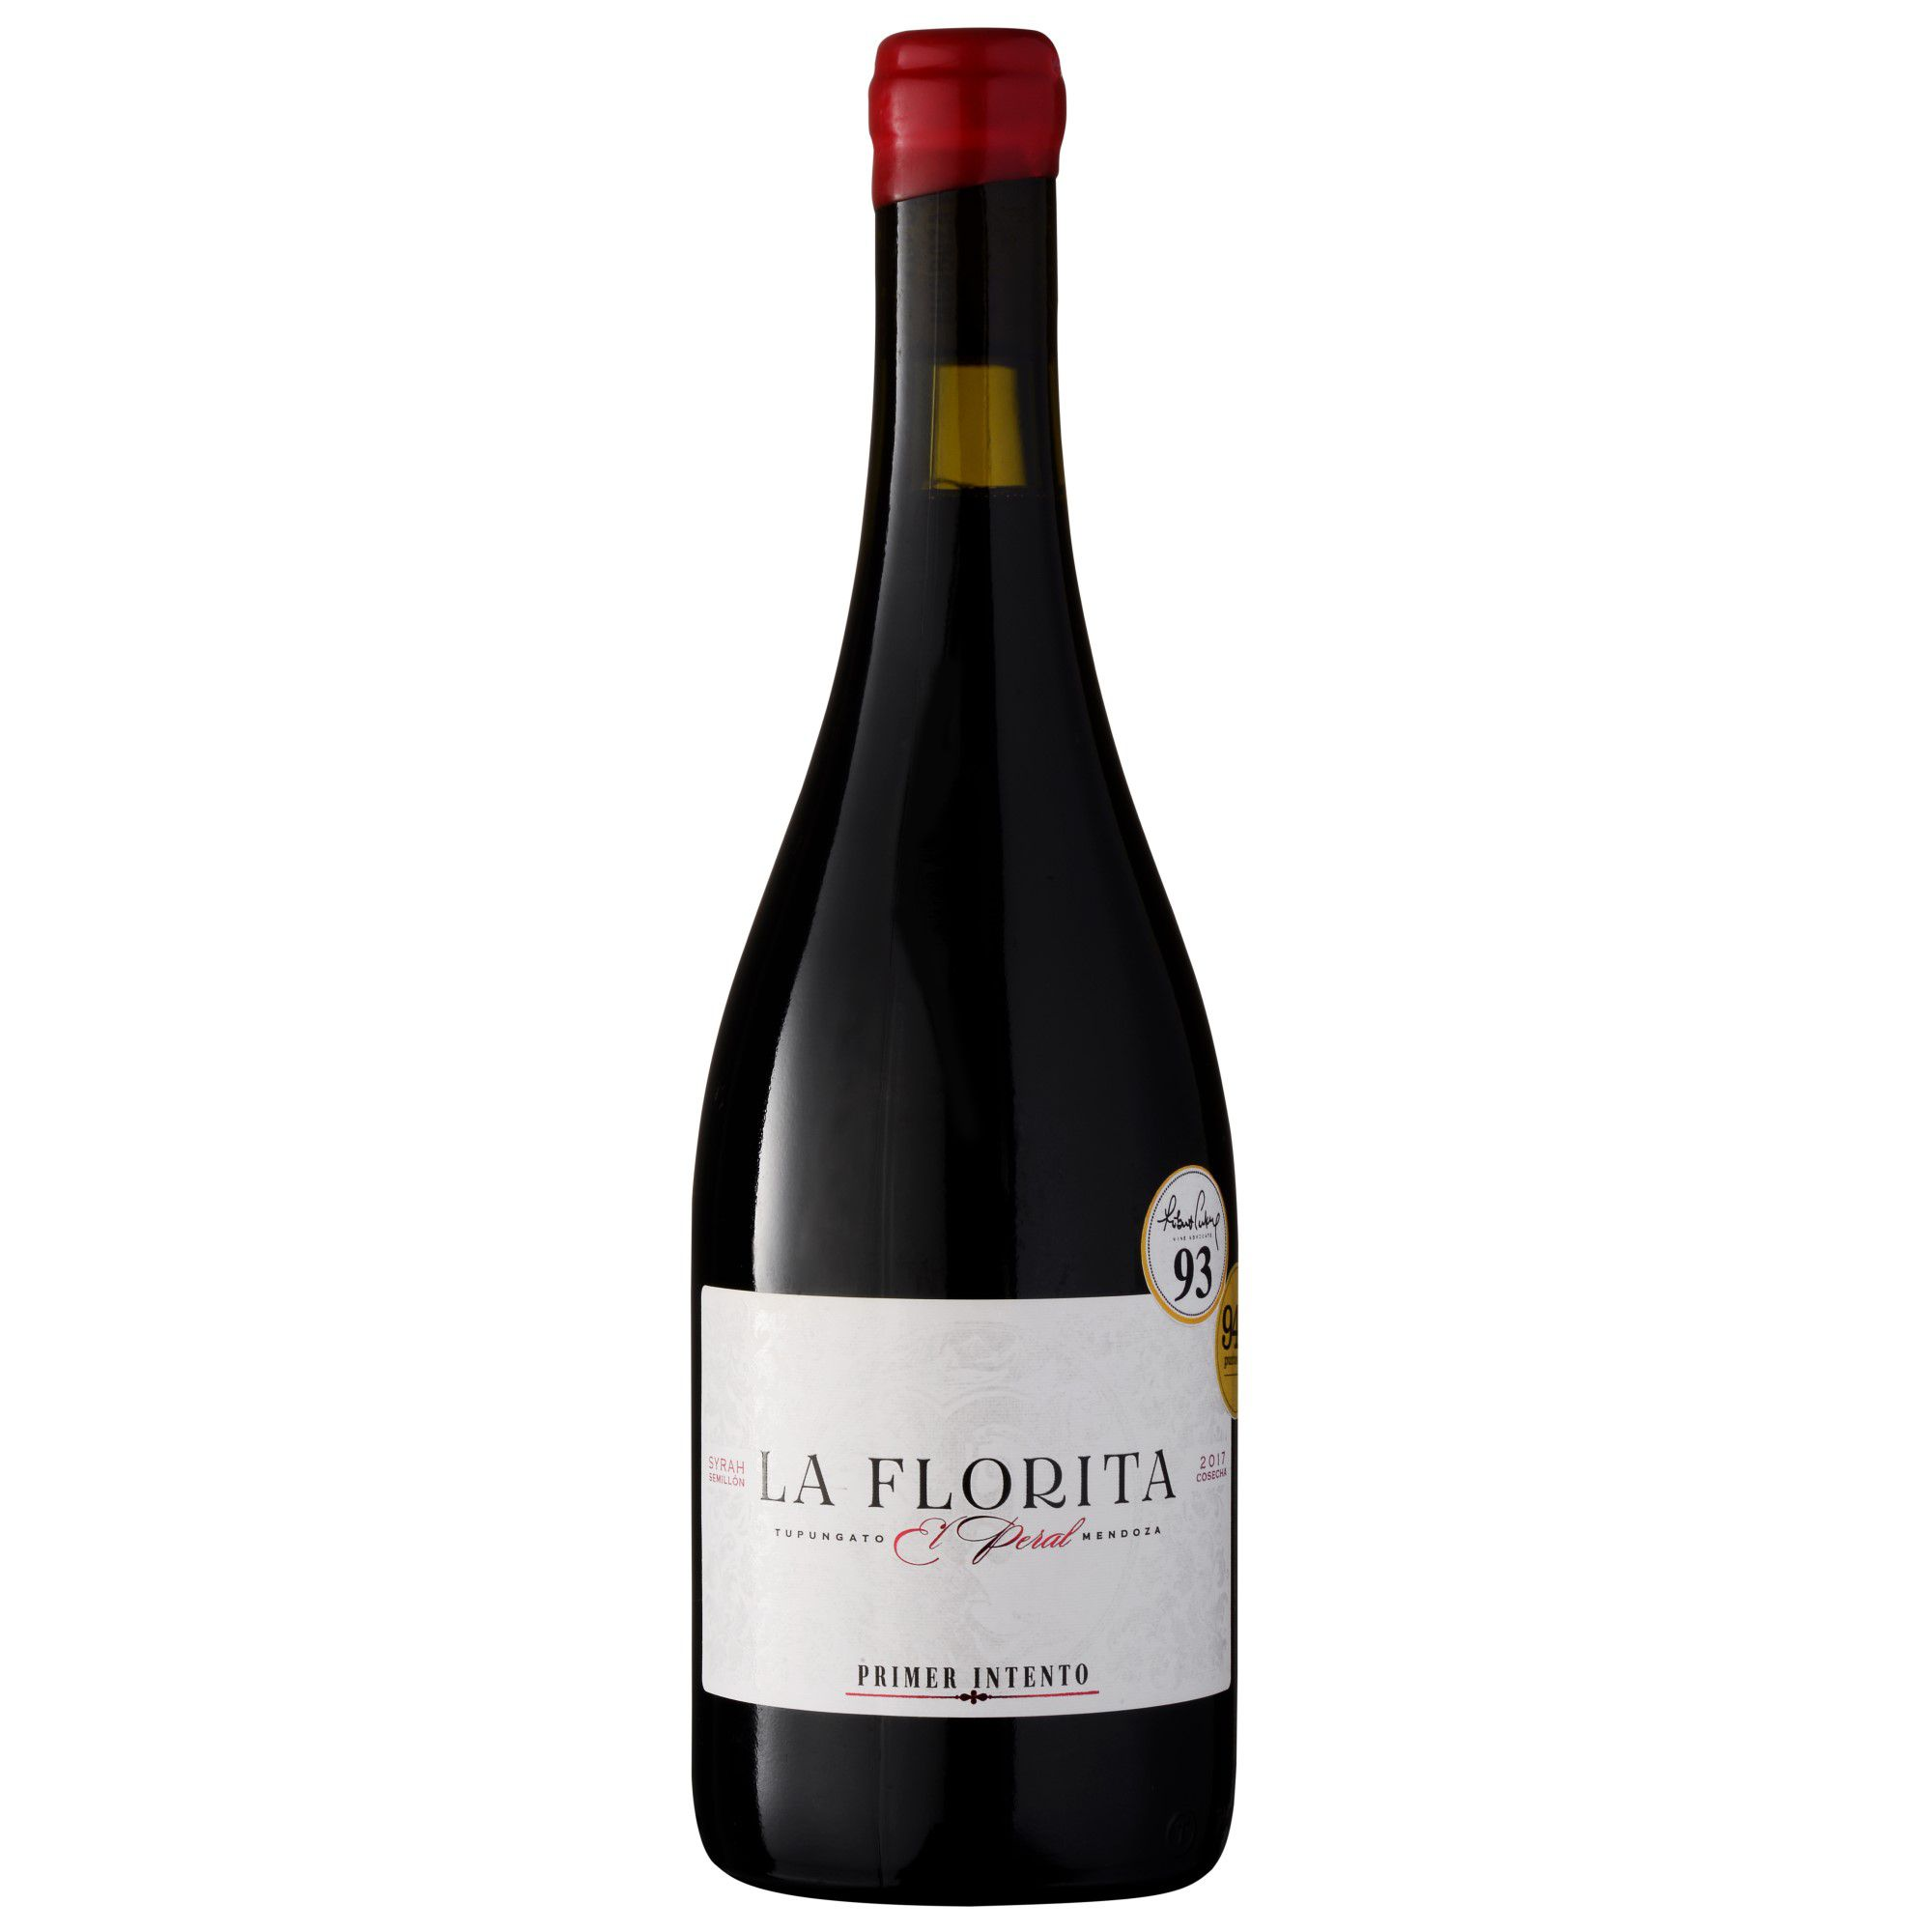 VINHO LA FLORITA PRIMER INTENTO SYRAH - 750ML